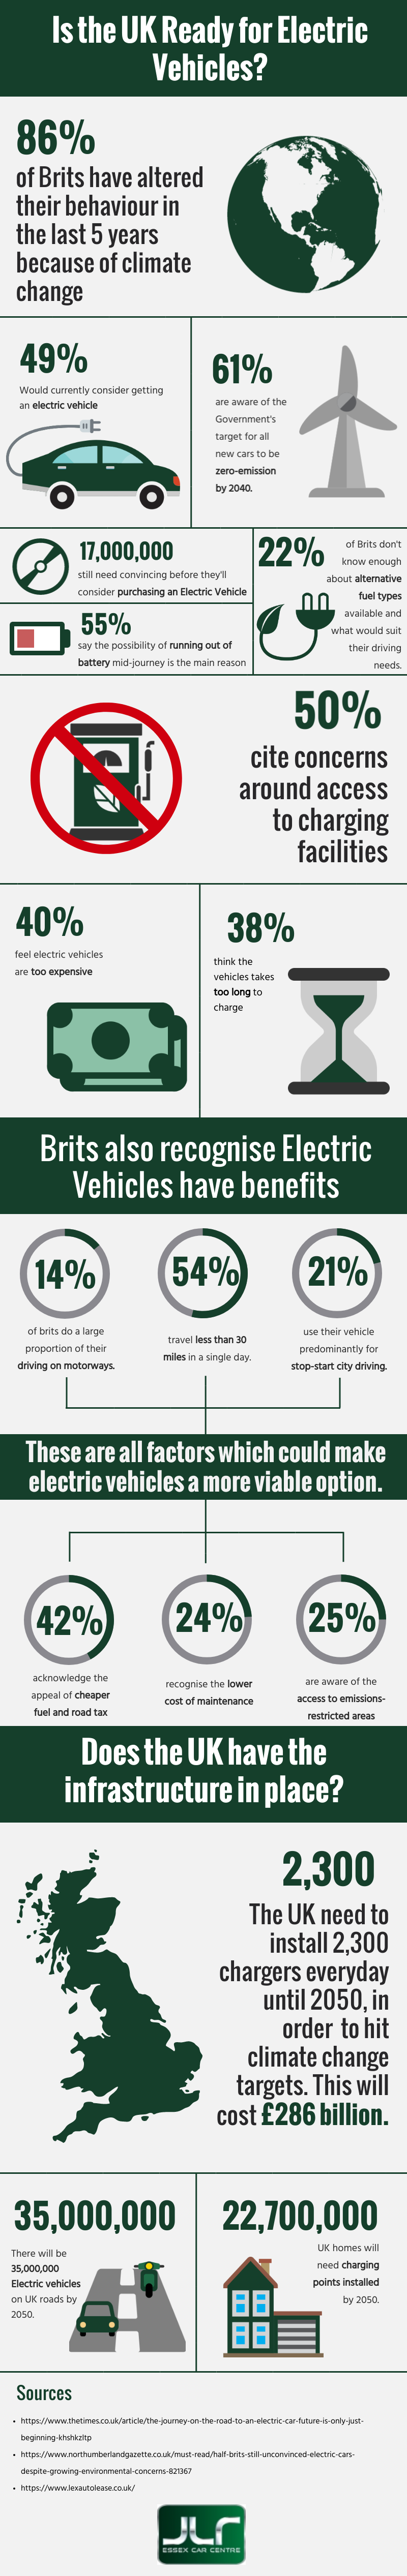 JLR Essex Infographic | Is the UK ready for electric vehicles?